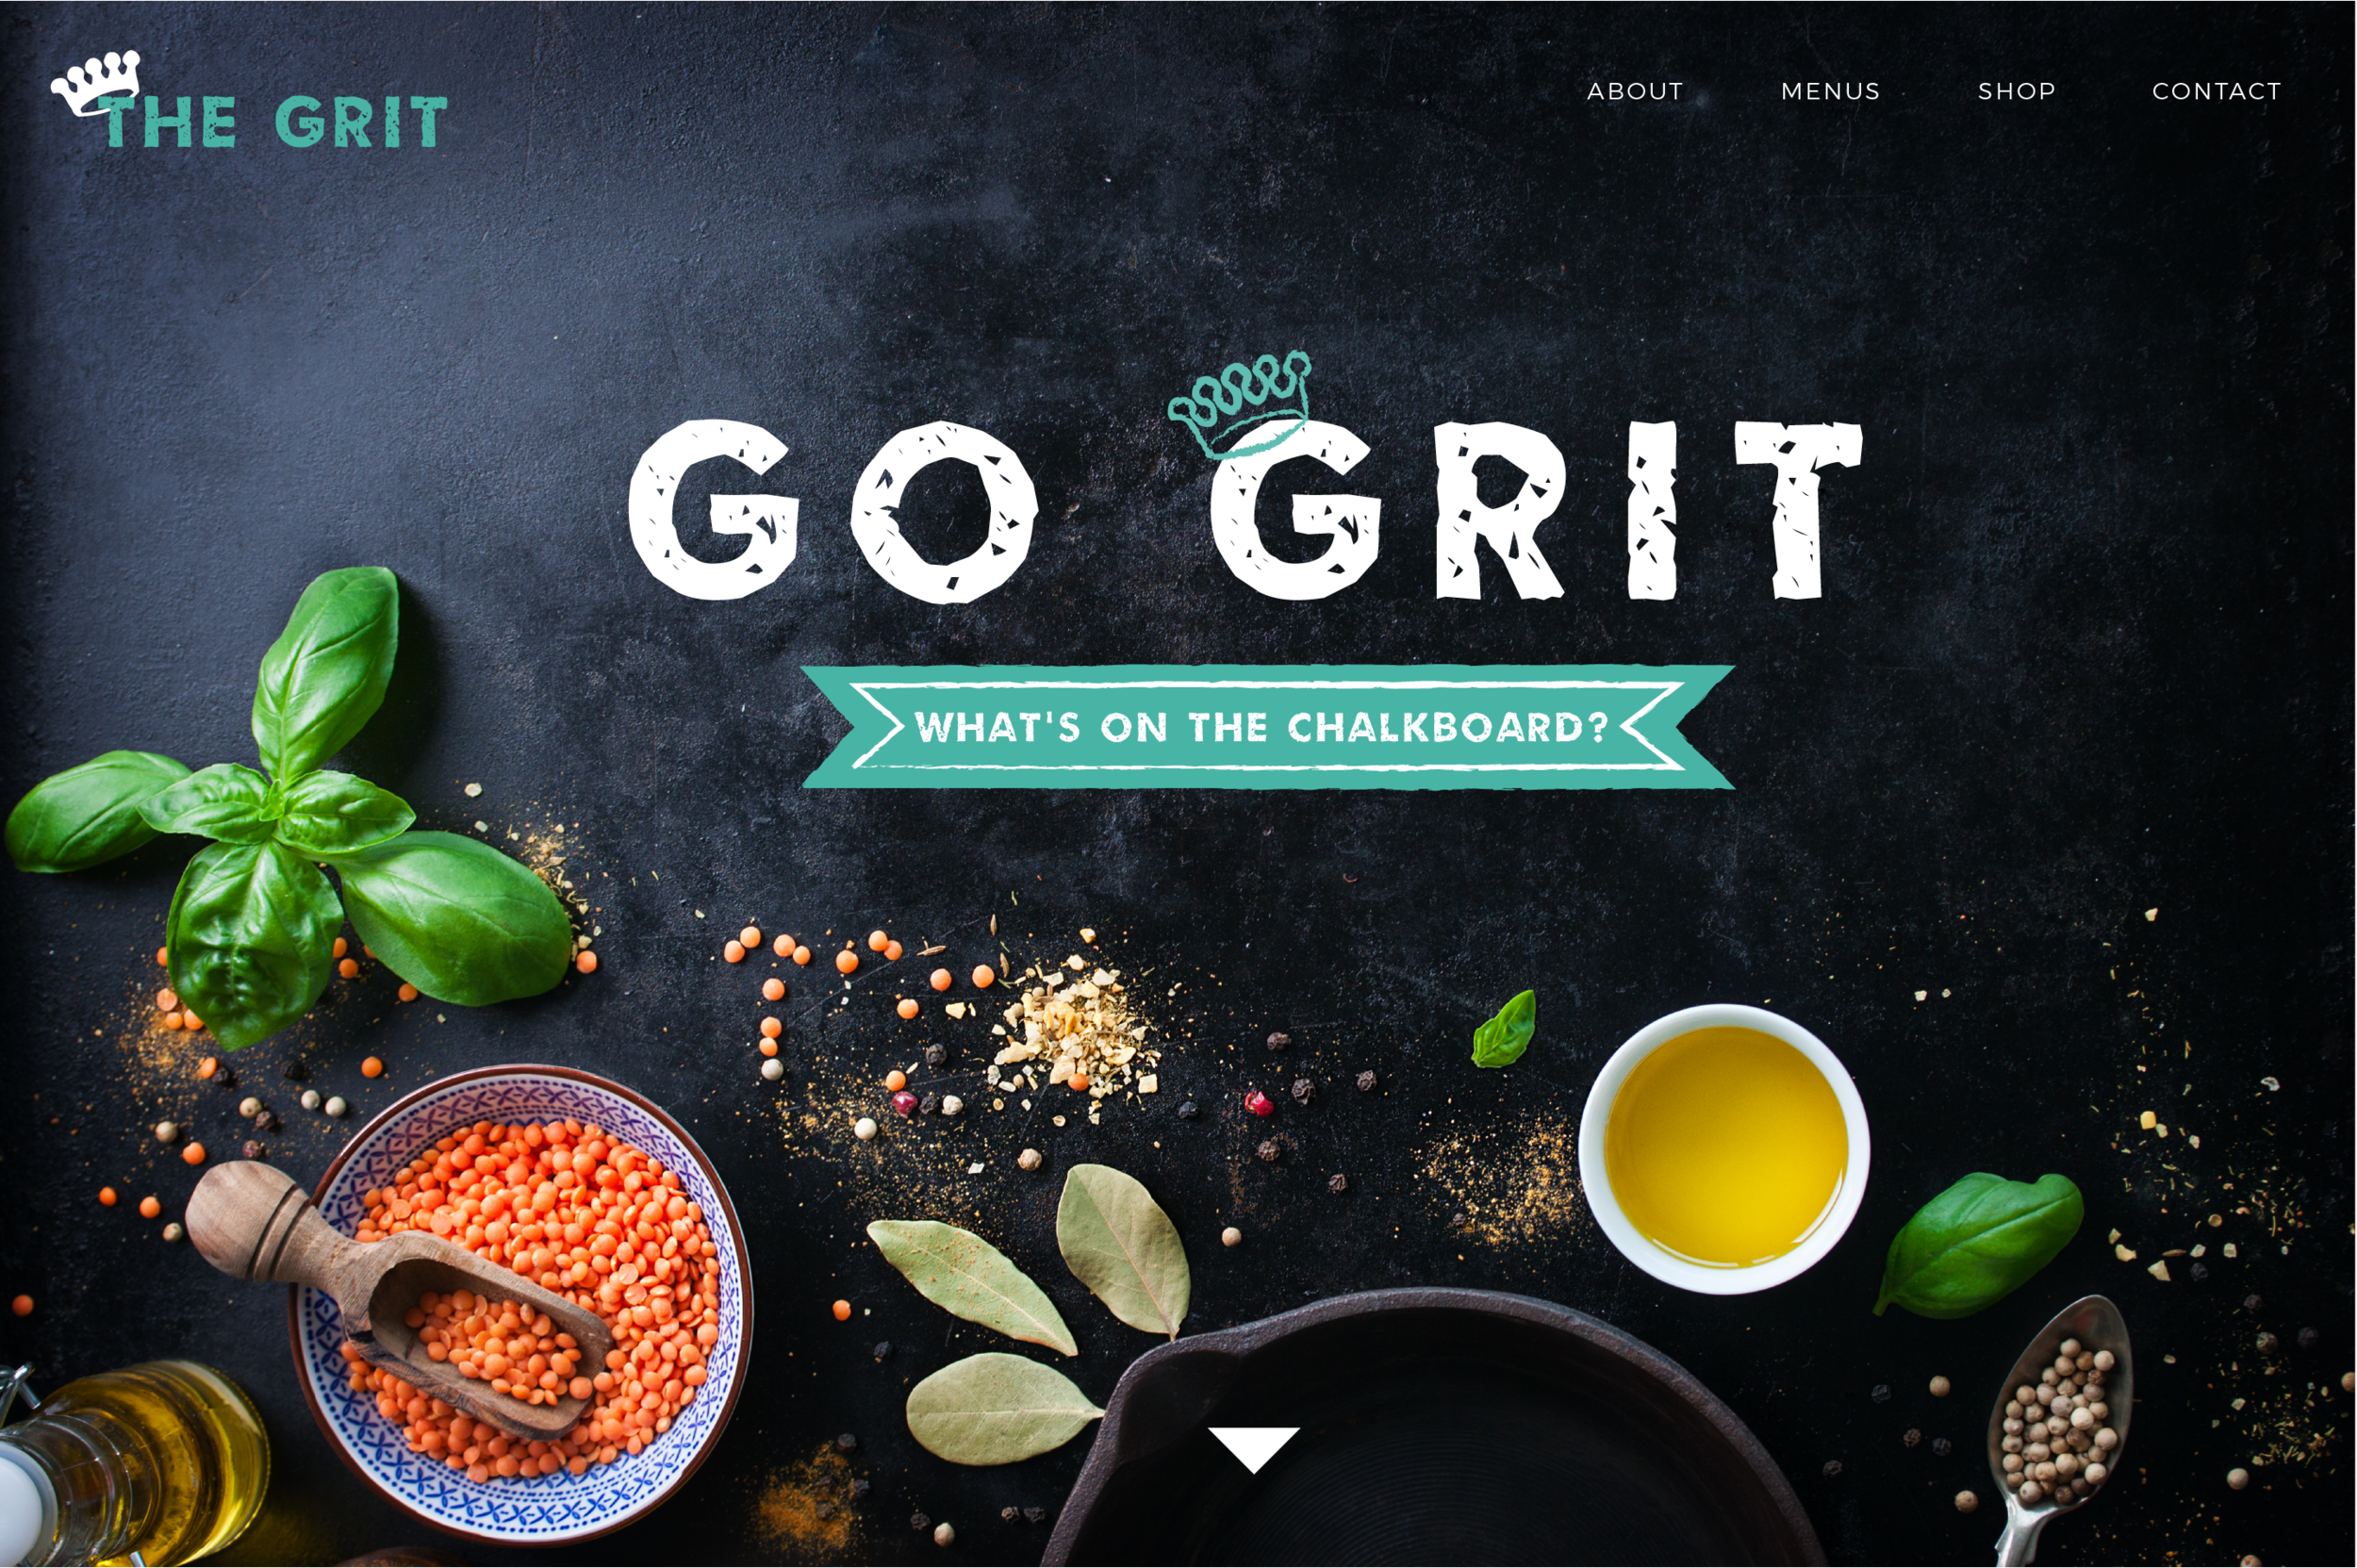 Redesign of the online homepage of local restaurant, The Grit